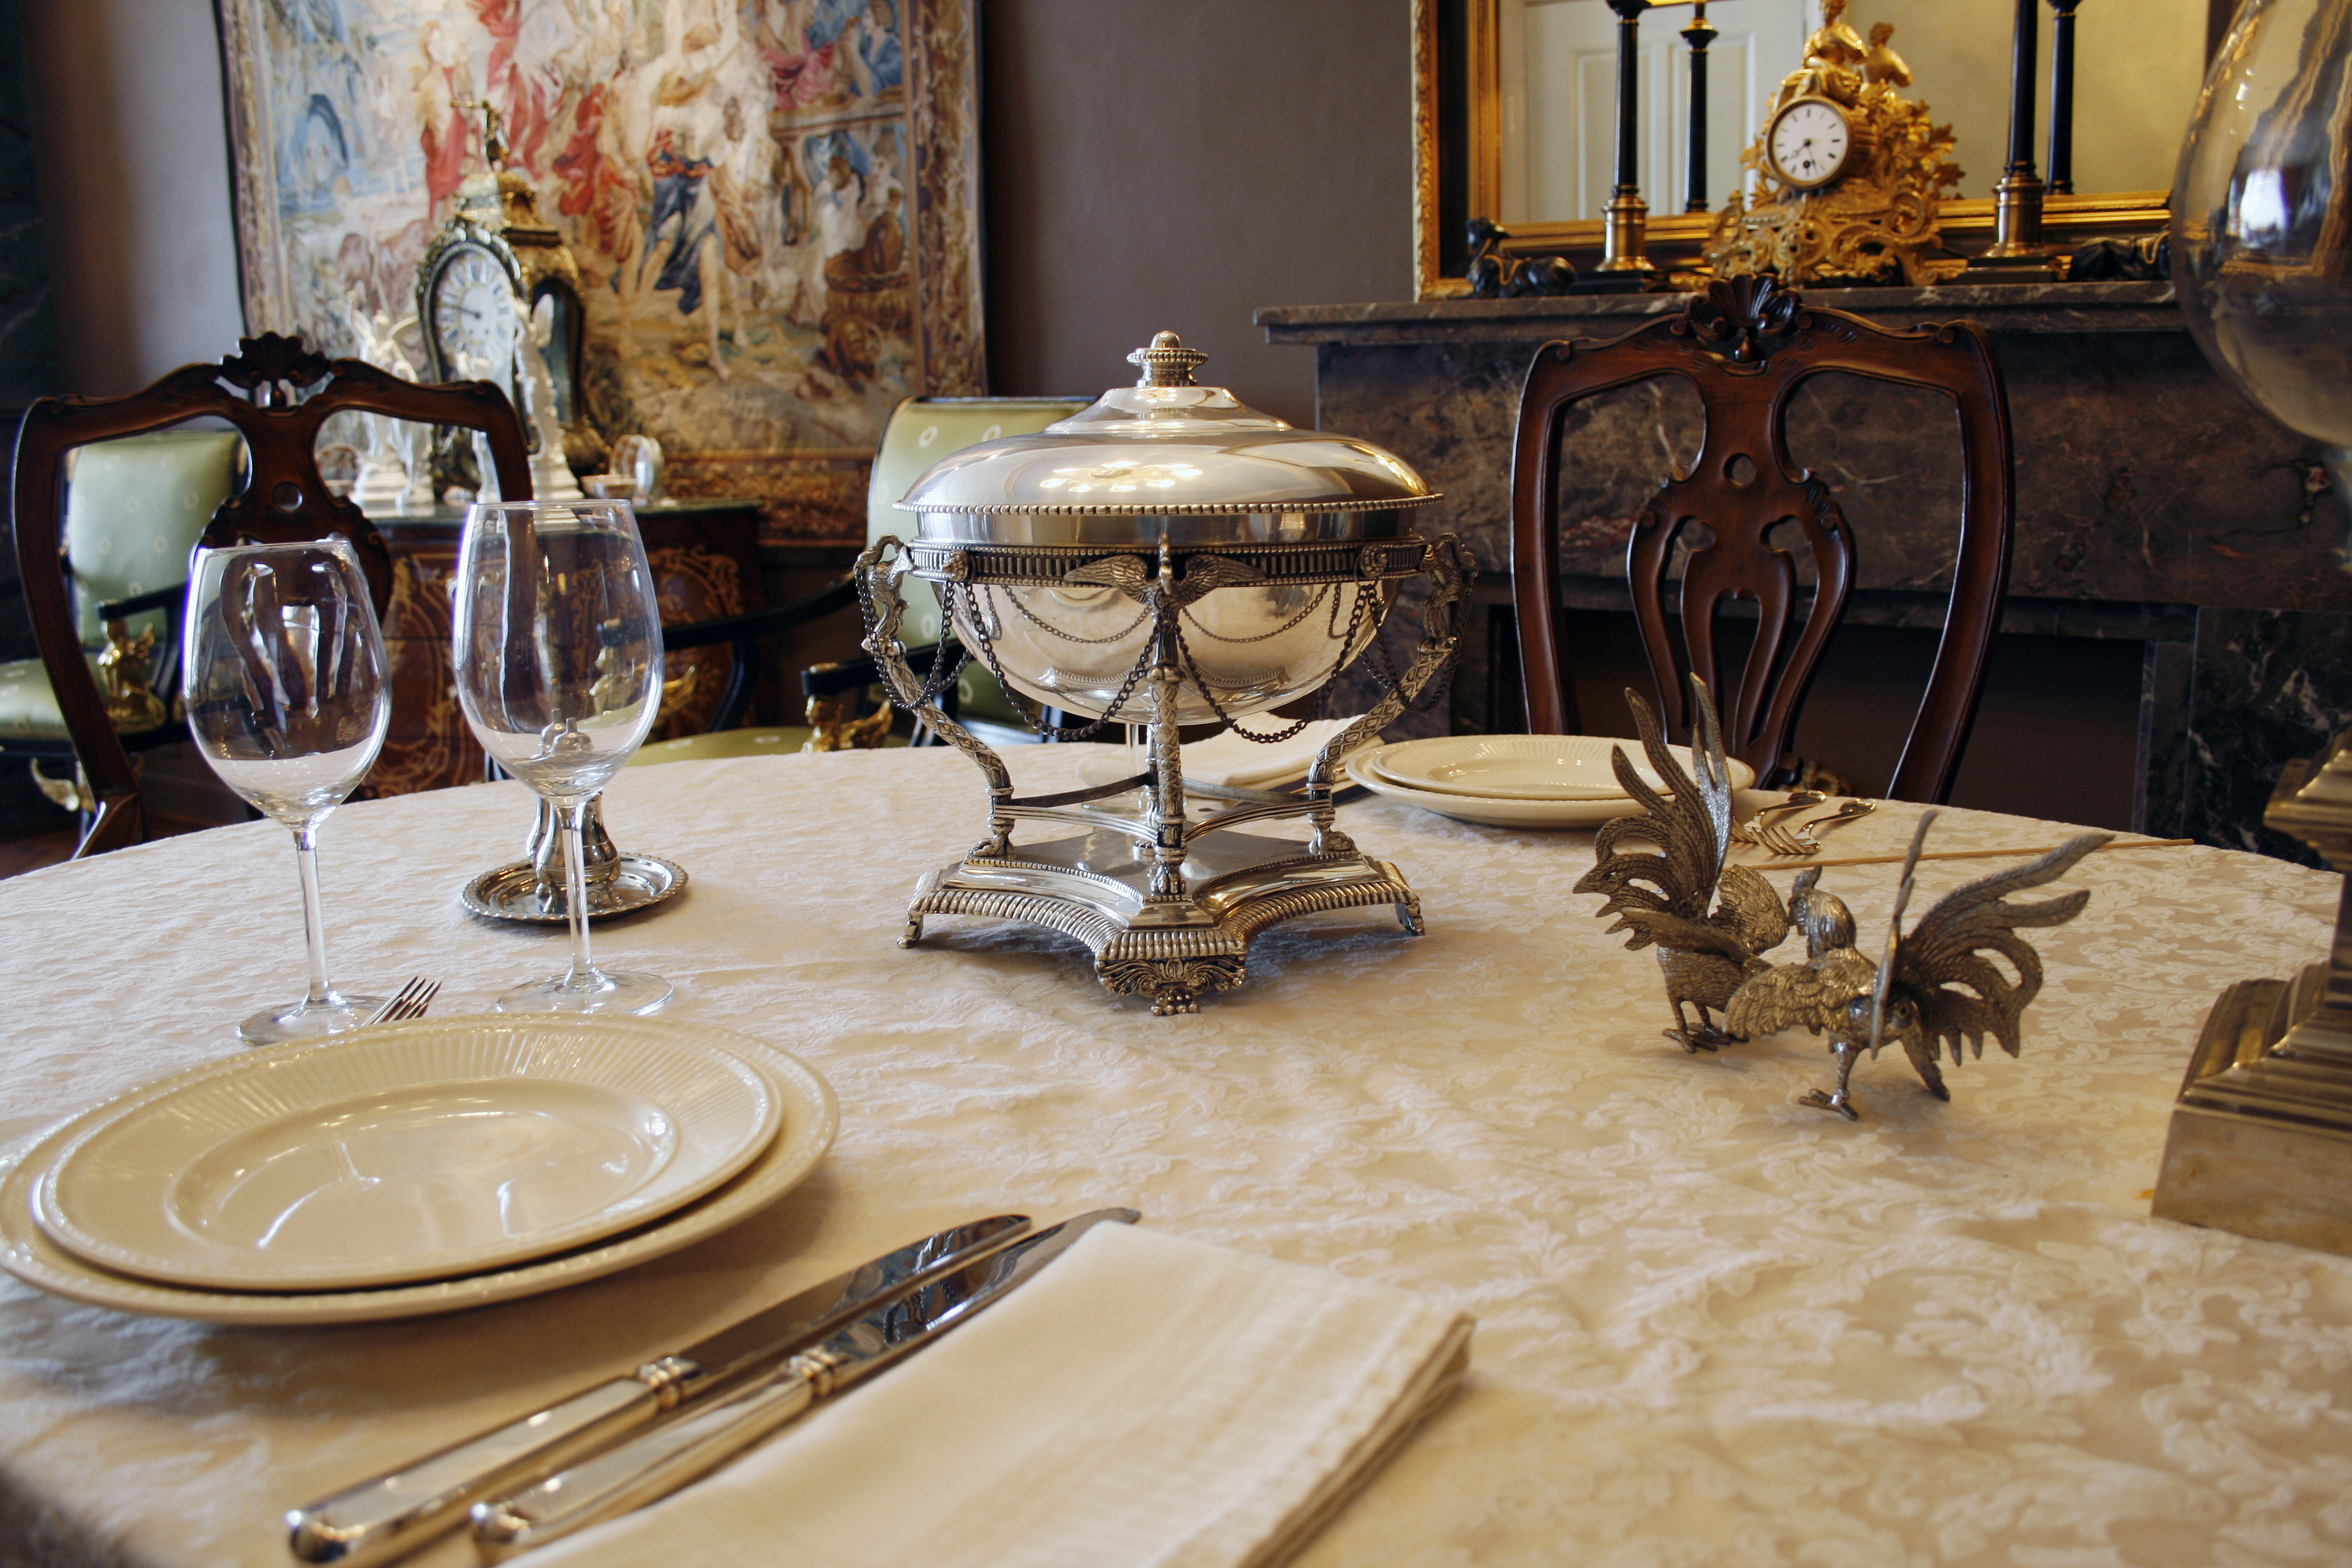 beautifully set table with antique silverware and silver soup bowl